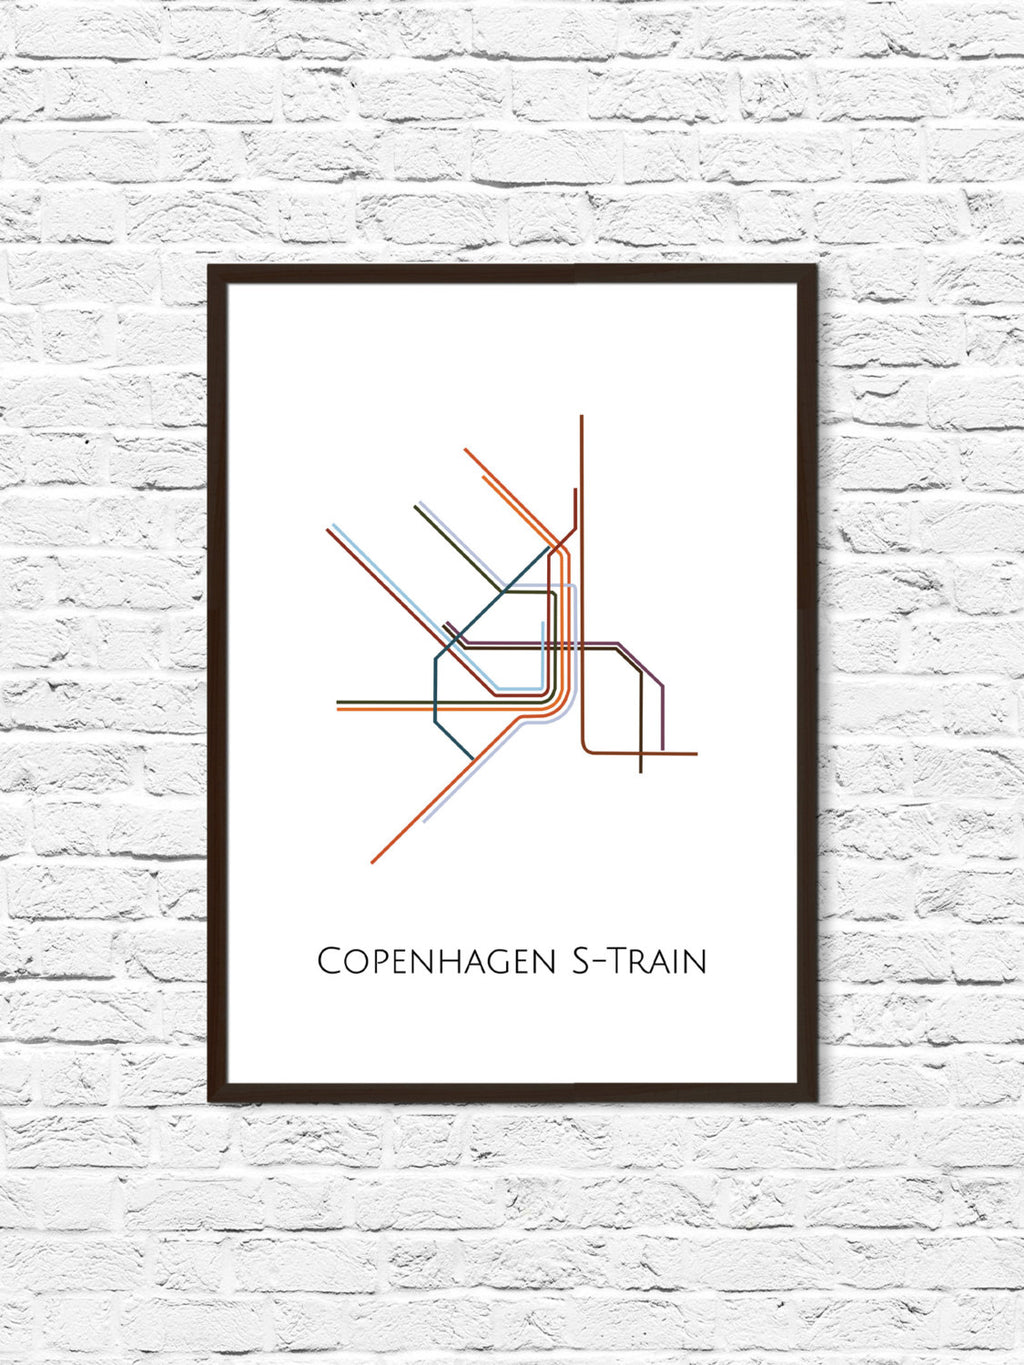 Copenhagen S-Train Metro Map - ParMar Media